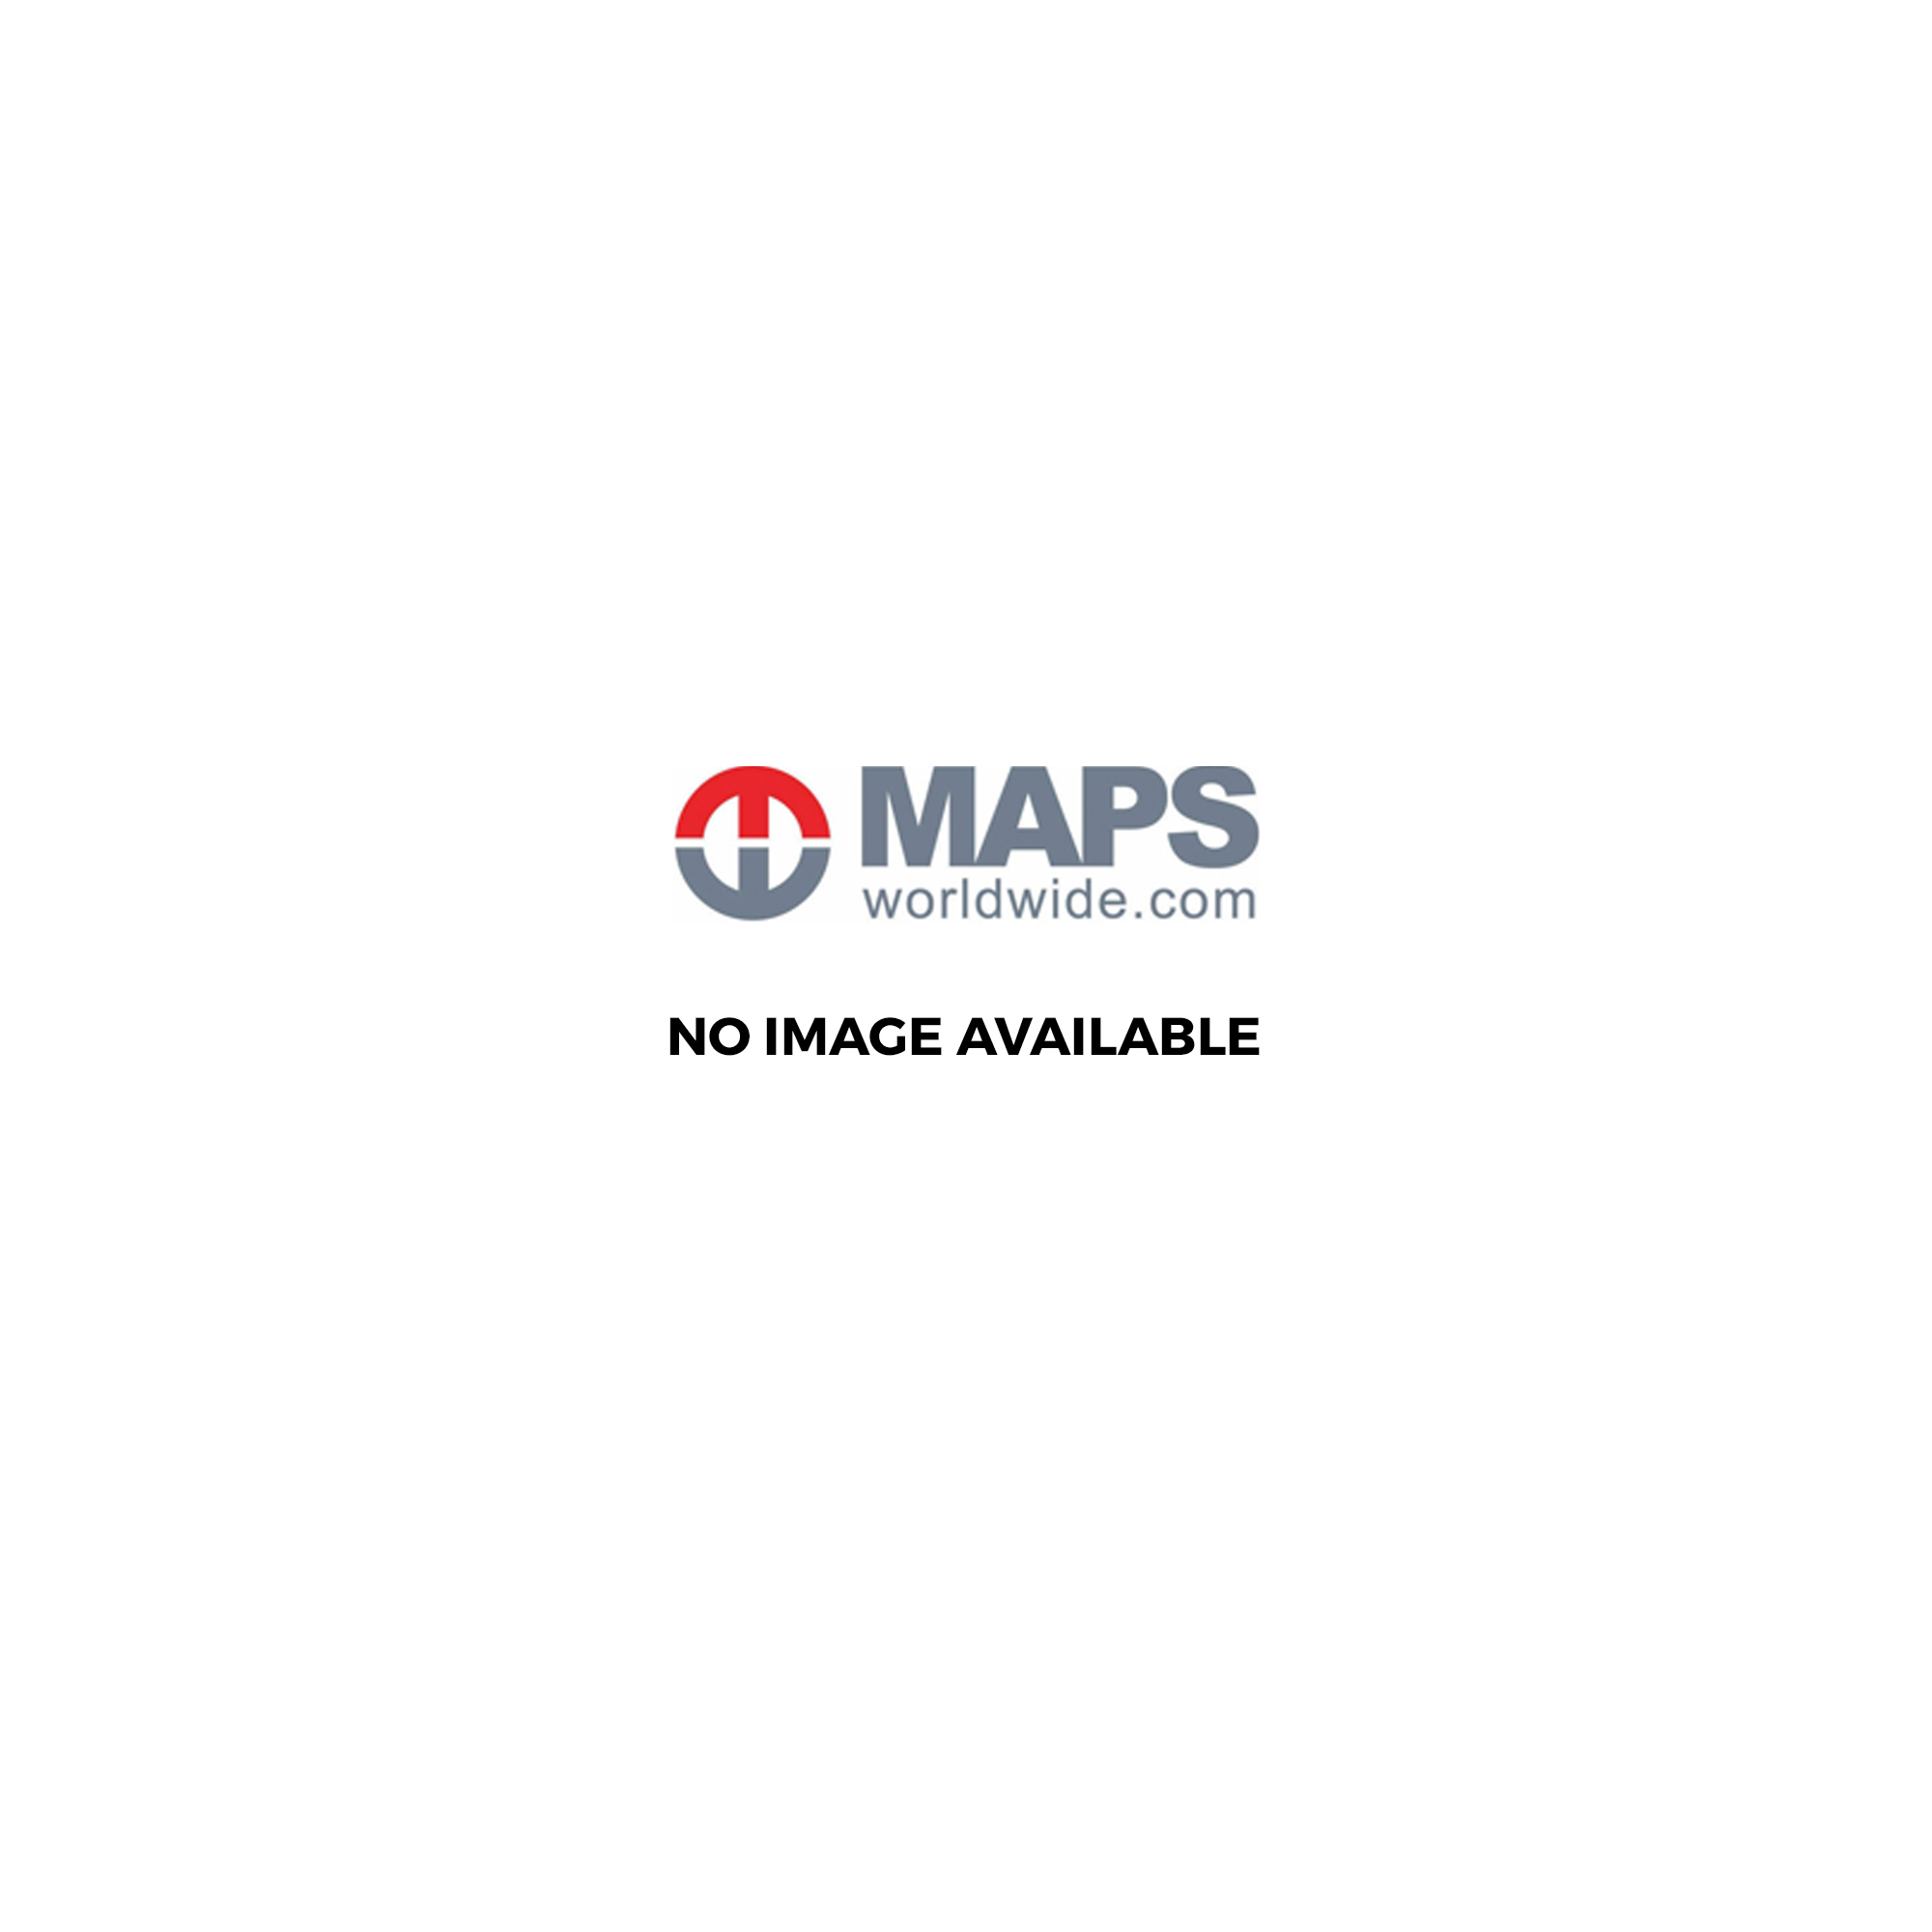 Michelin National Map Morocco Africa From Maps Worldwide UK - Michelin map portugal 733